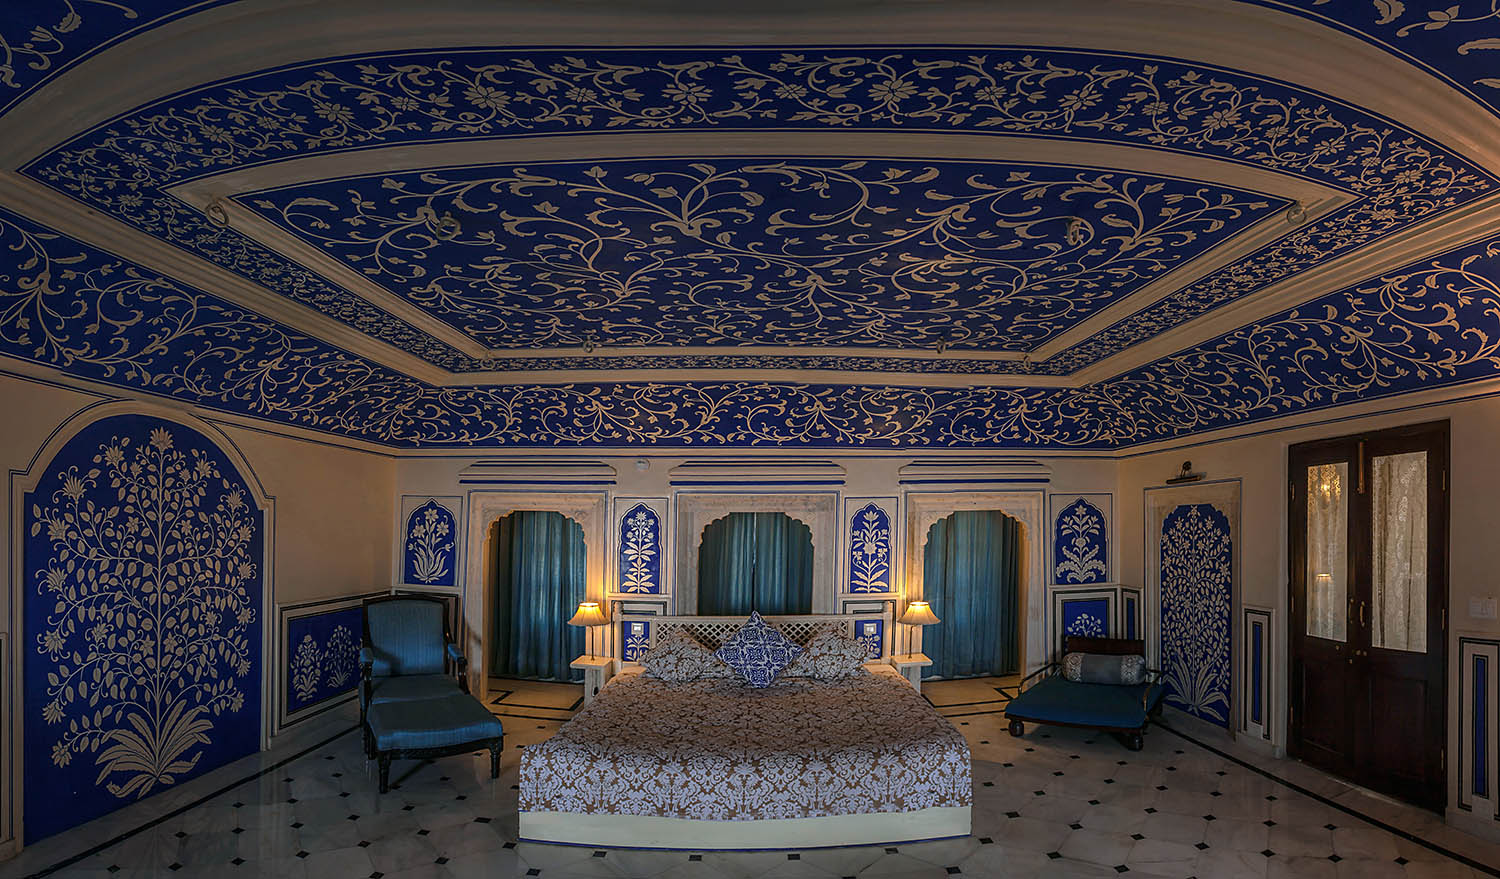 Royal heritage haveli khatipura road khatipura jaipur rajasthan book online Home architecture in jaipur